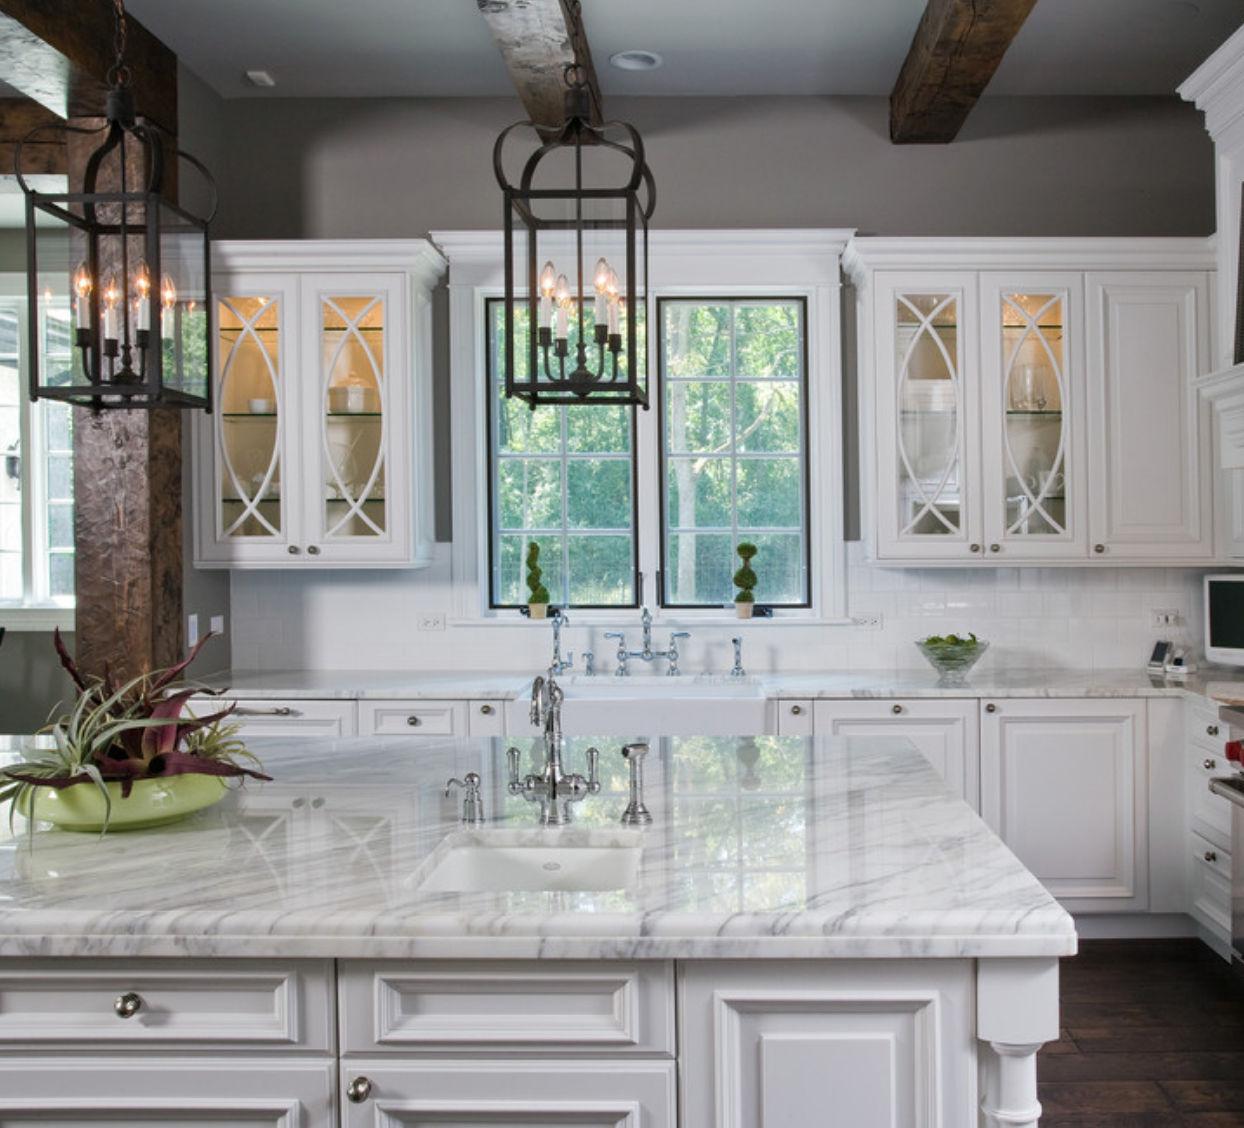 marble countertop kitchen photo